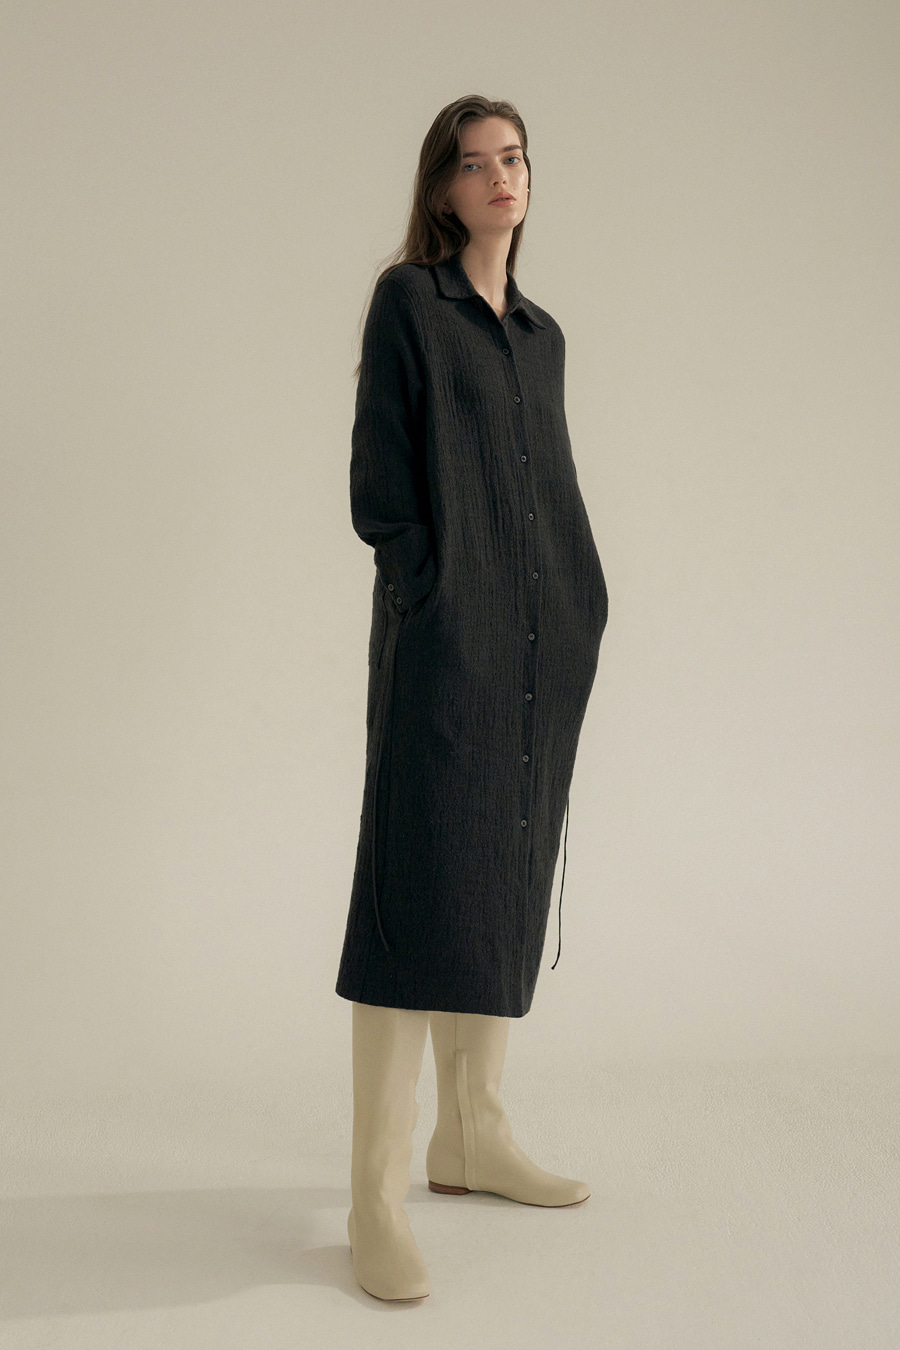 andew long shirt one-piece